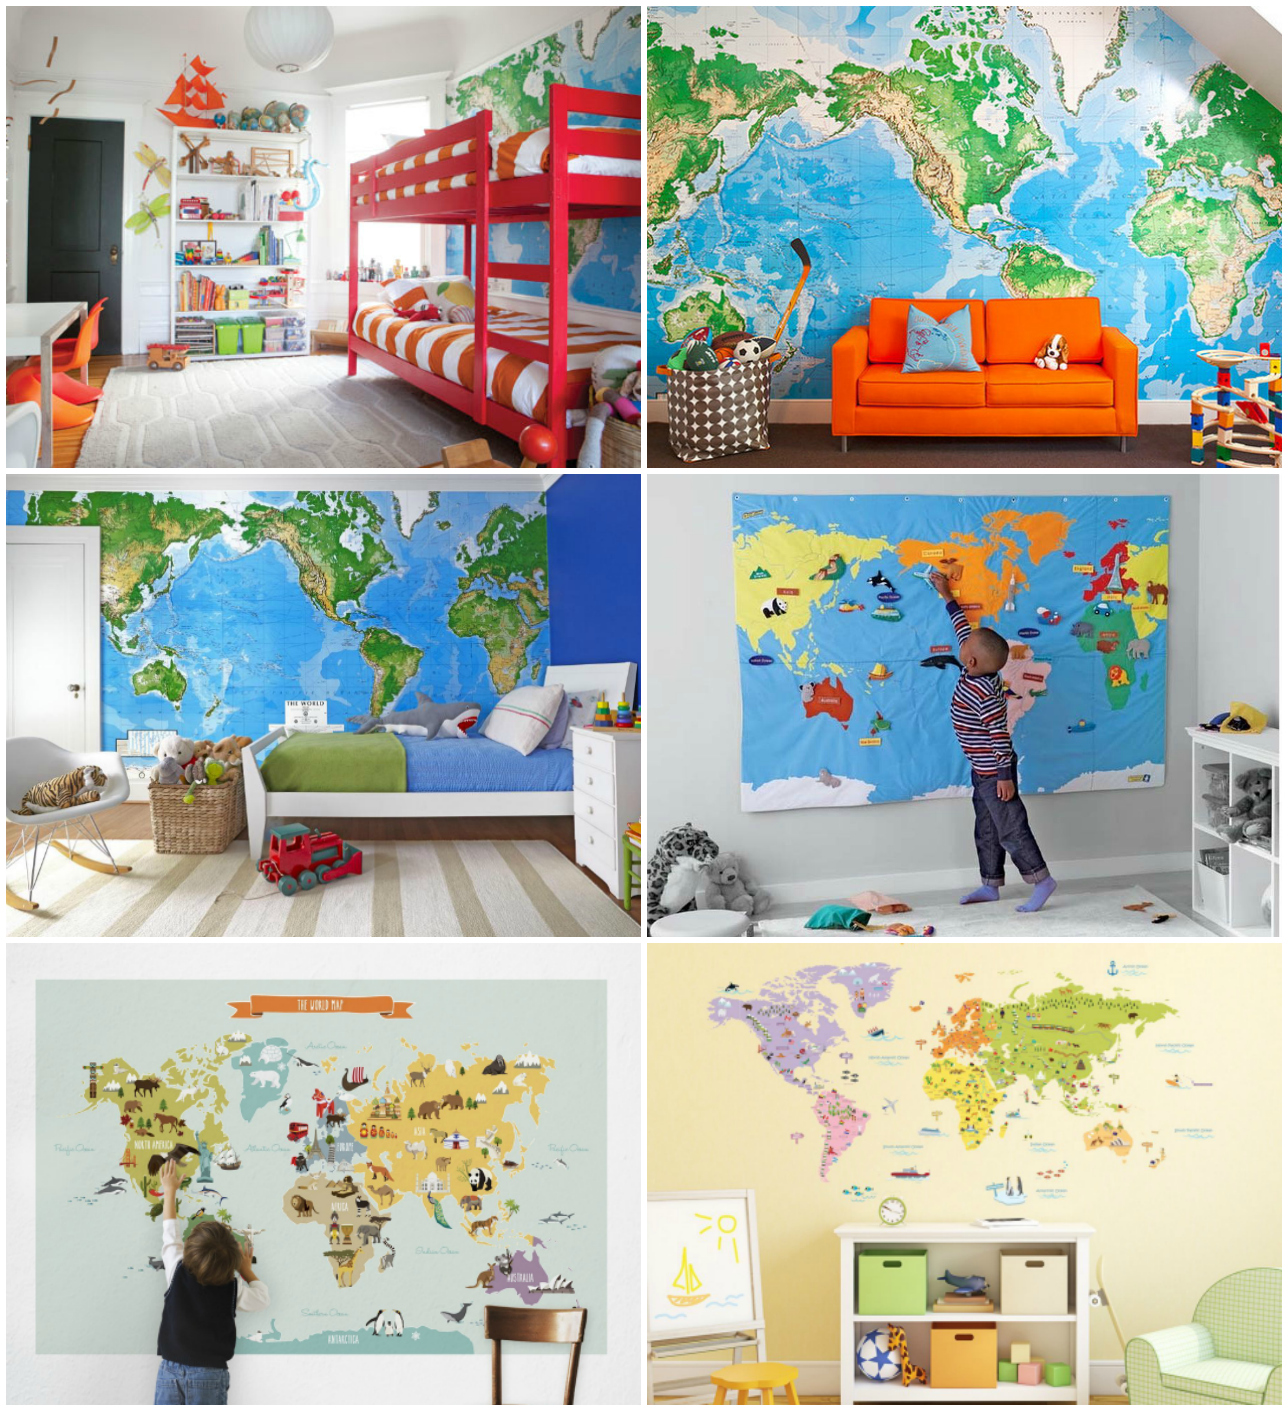 World wall map inspiration how we montessori wall map inspiration at how we montessori gumiabroncs Images